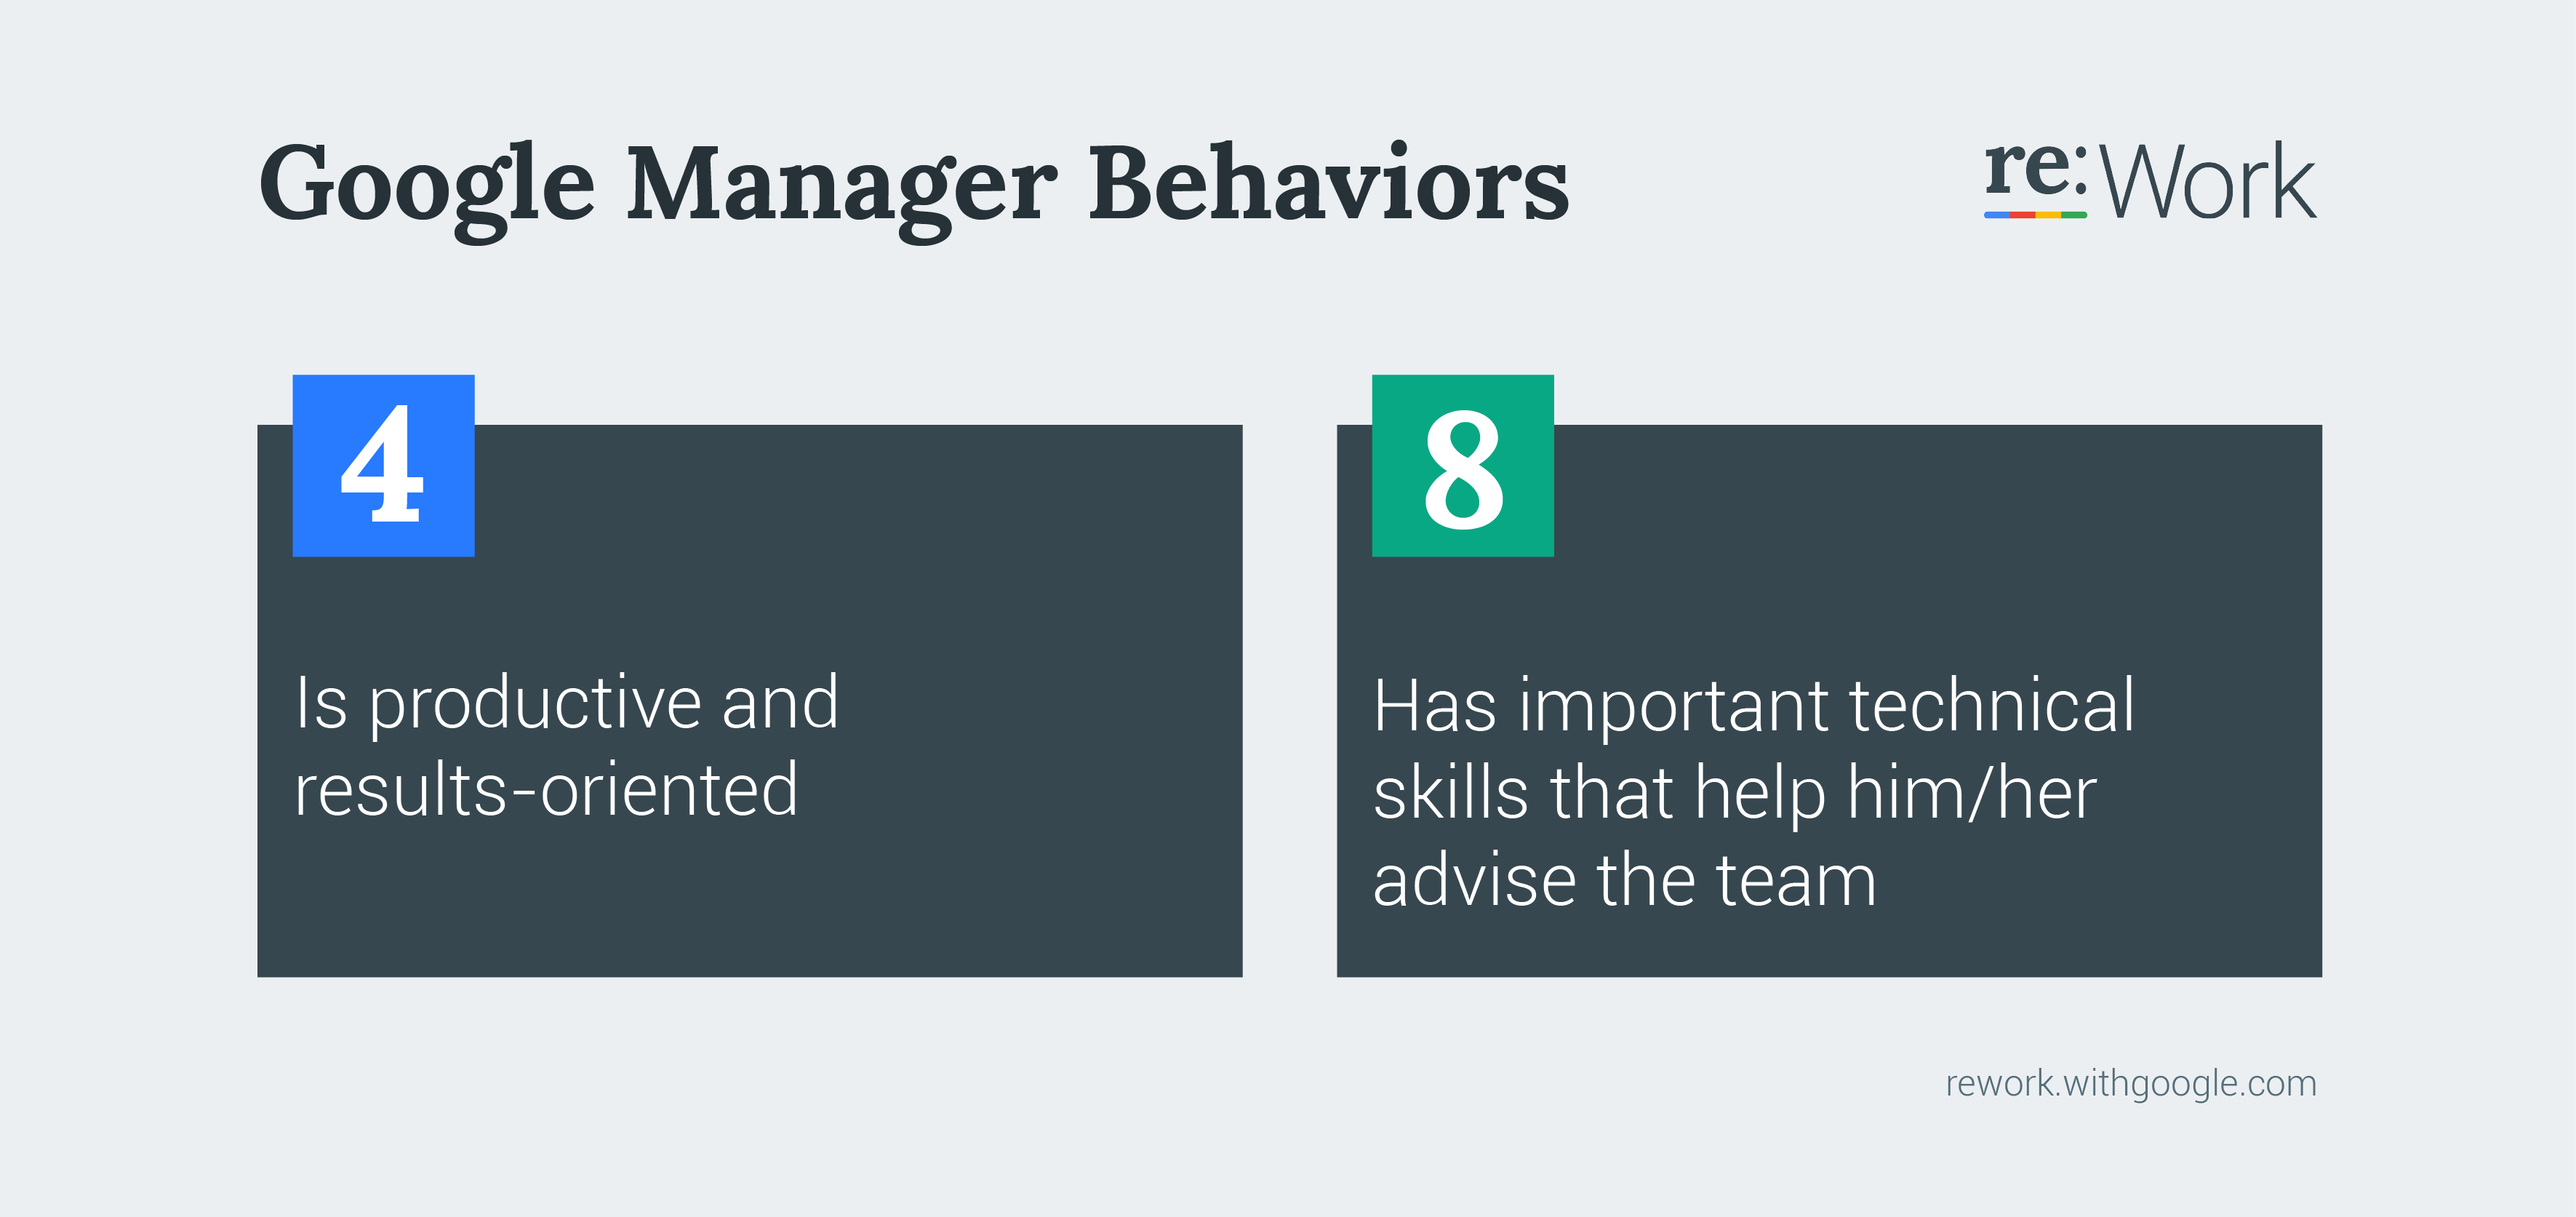 Google Manager Behaviors 4 Is productive and results-oriented. 8 Has important technical skills that help him/her advise the team.